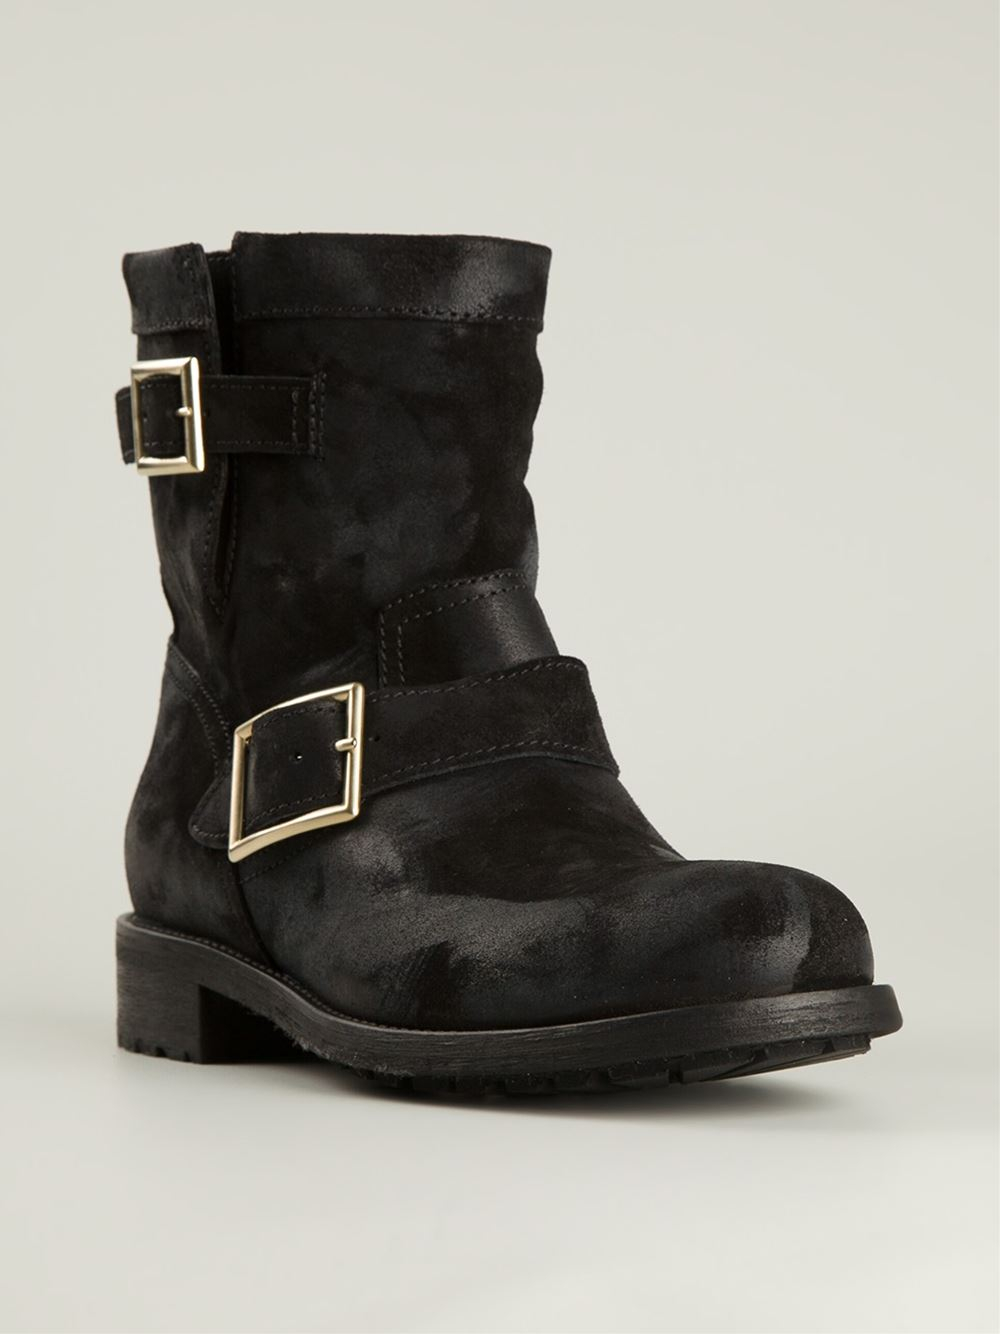 Jimmy Choo Youth Biker Boots in Black